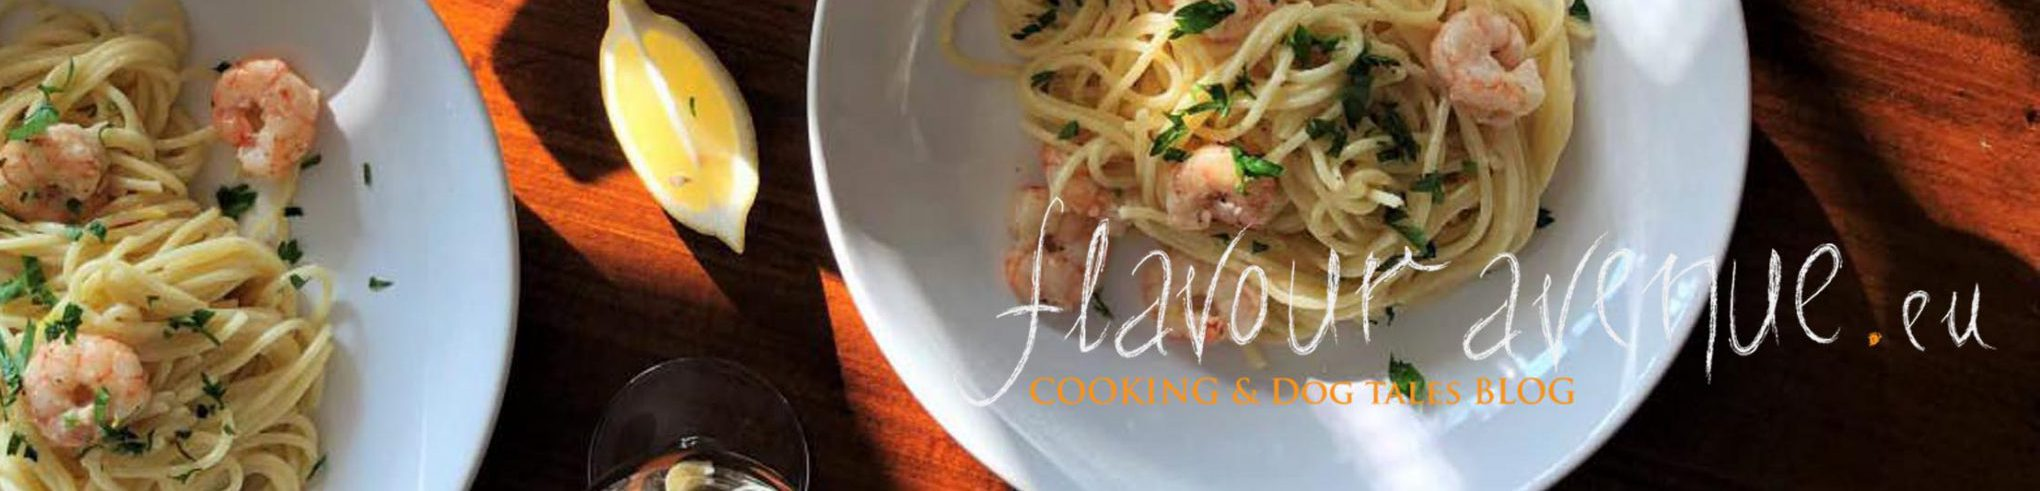 Flavour Avenue – Cooking and Dog Tales Blog